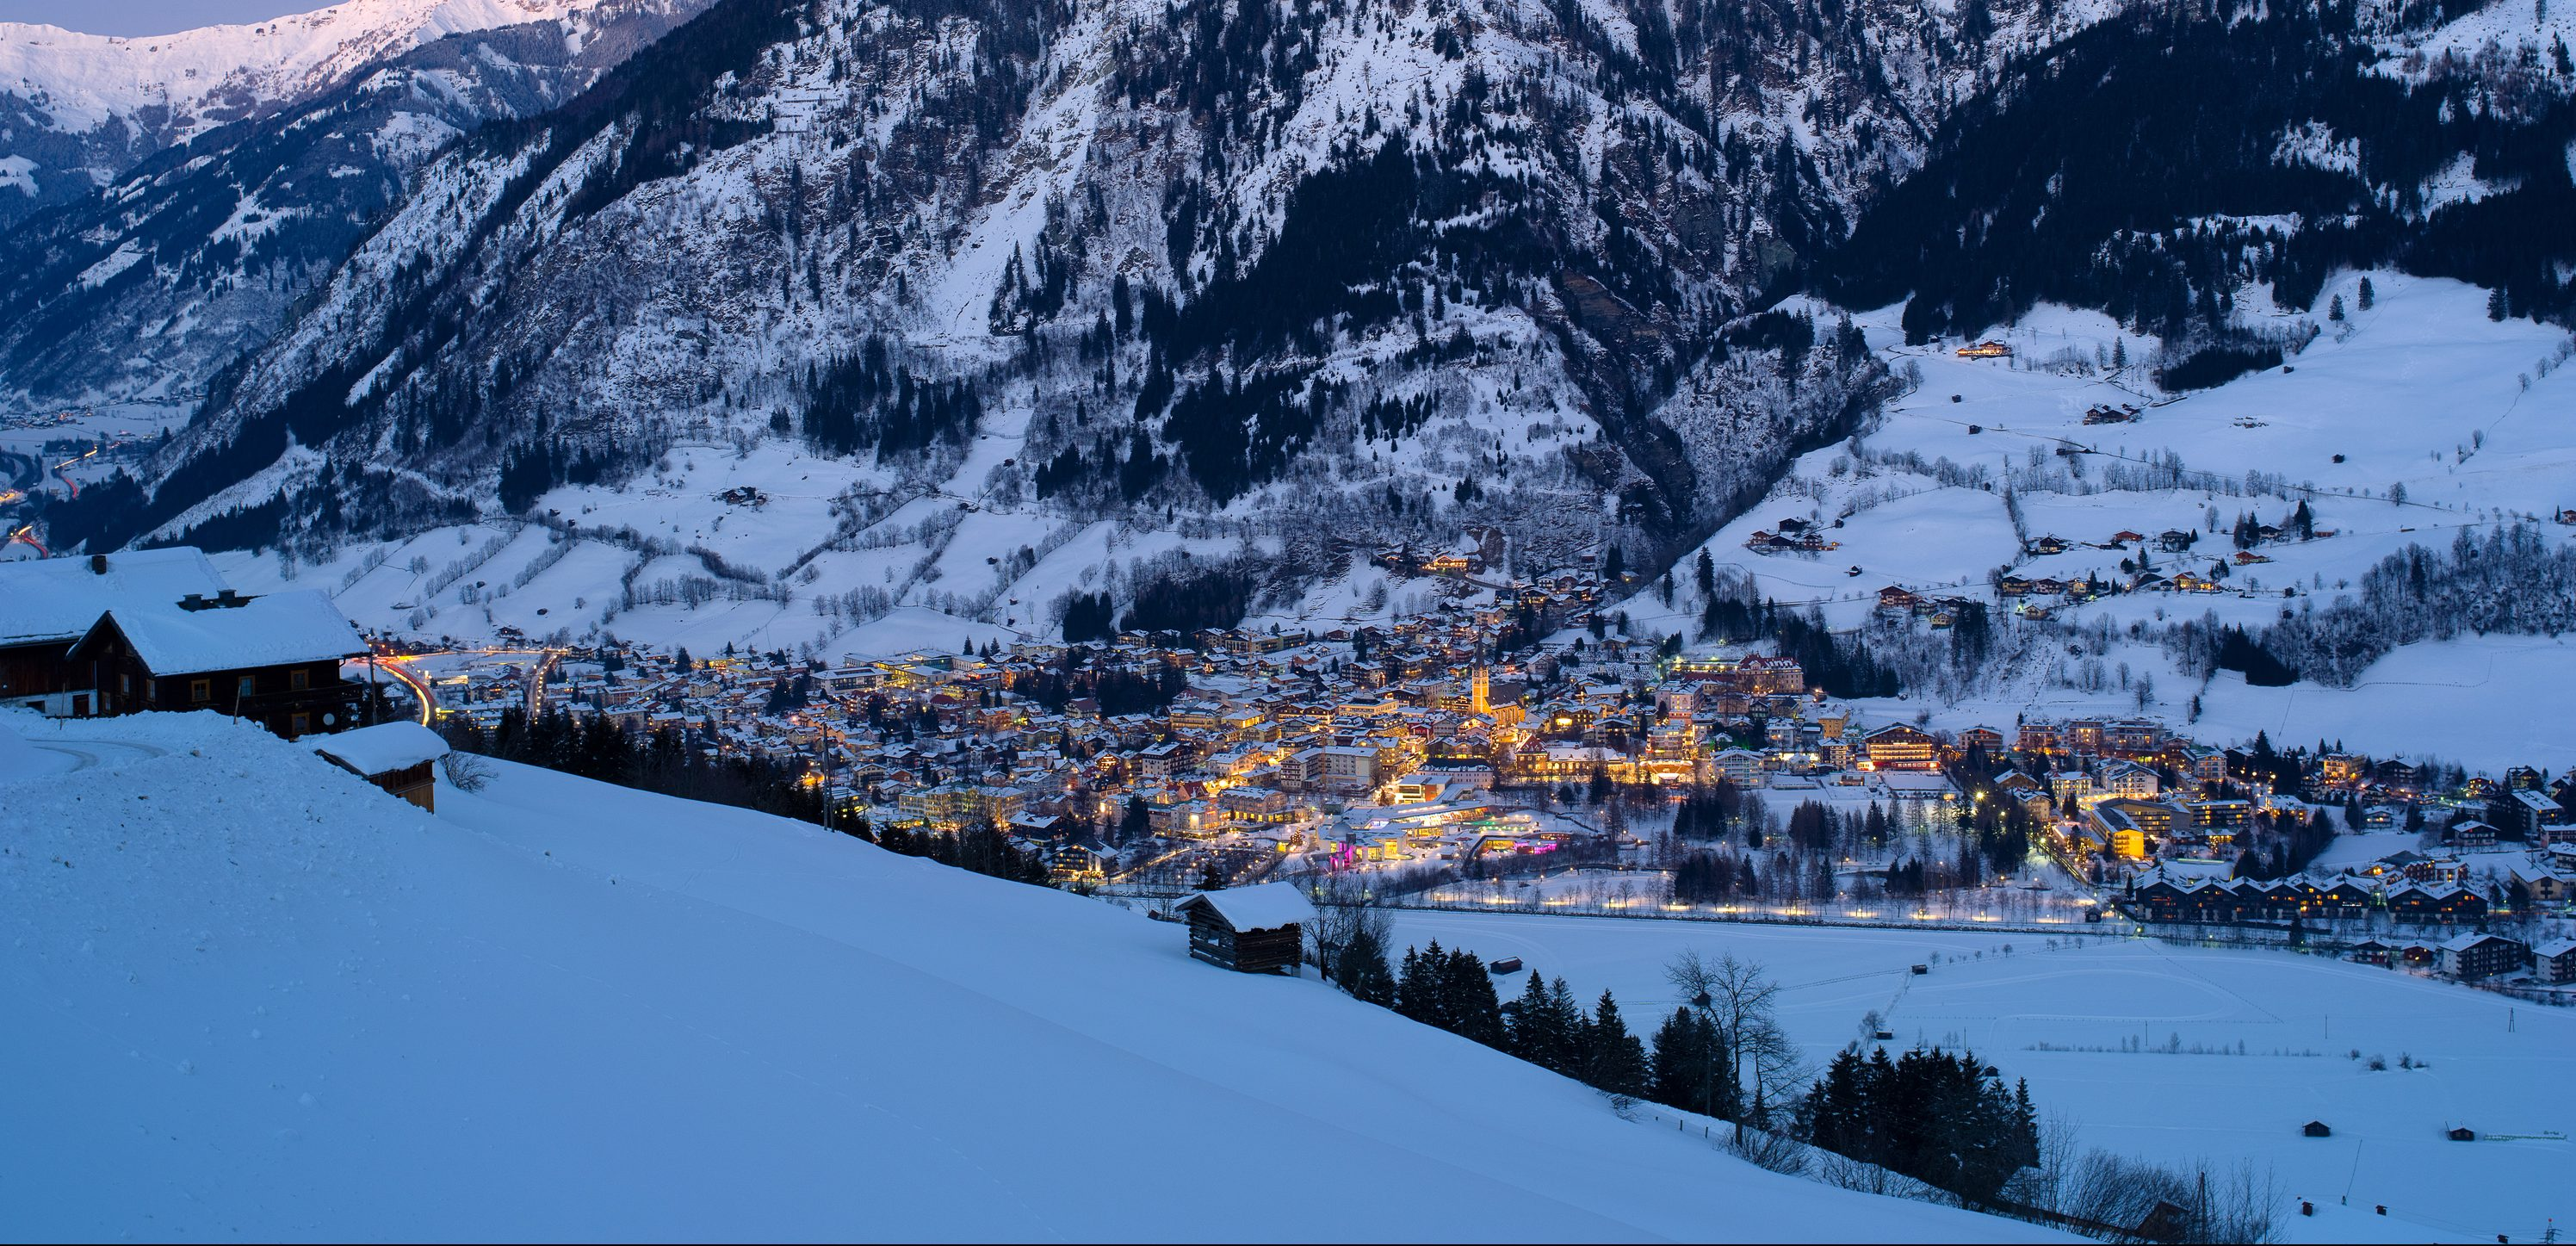 bad hofgastein for winter sports and spas